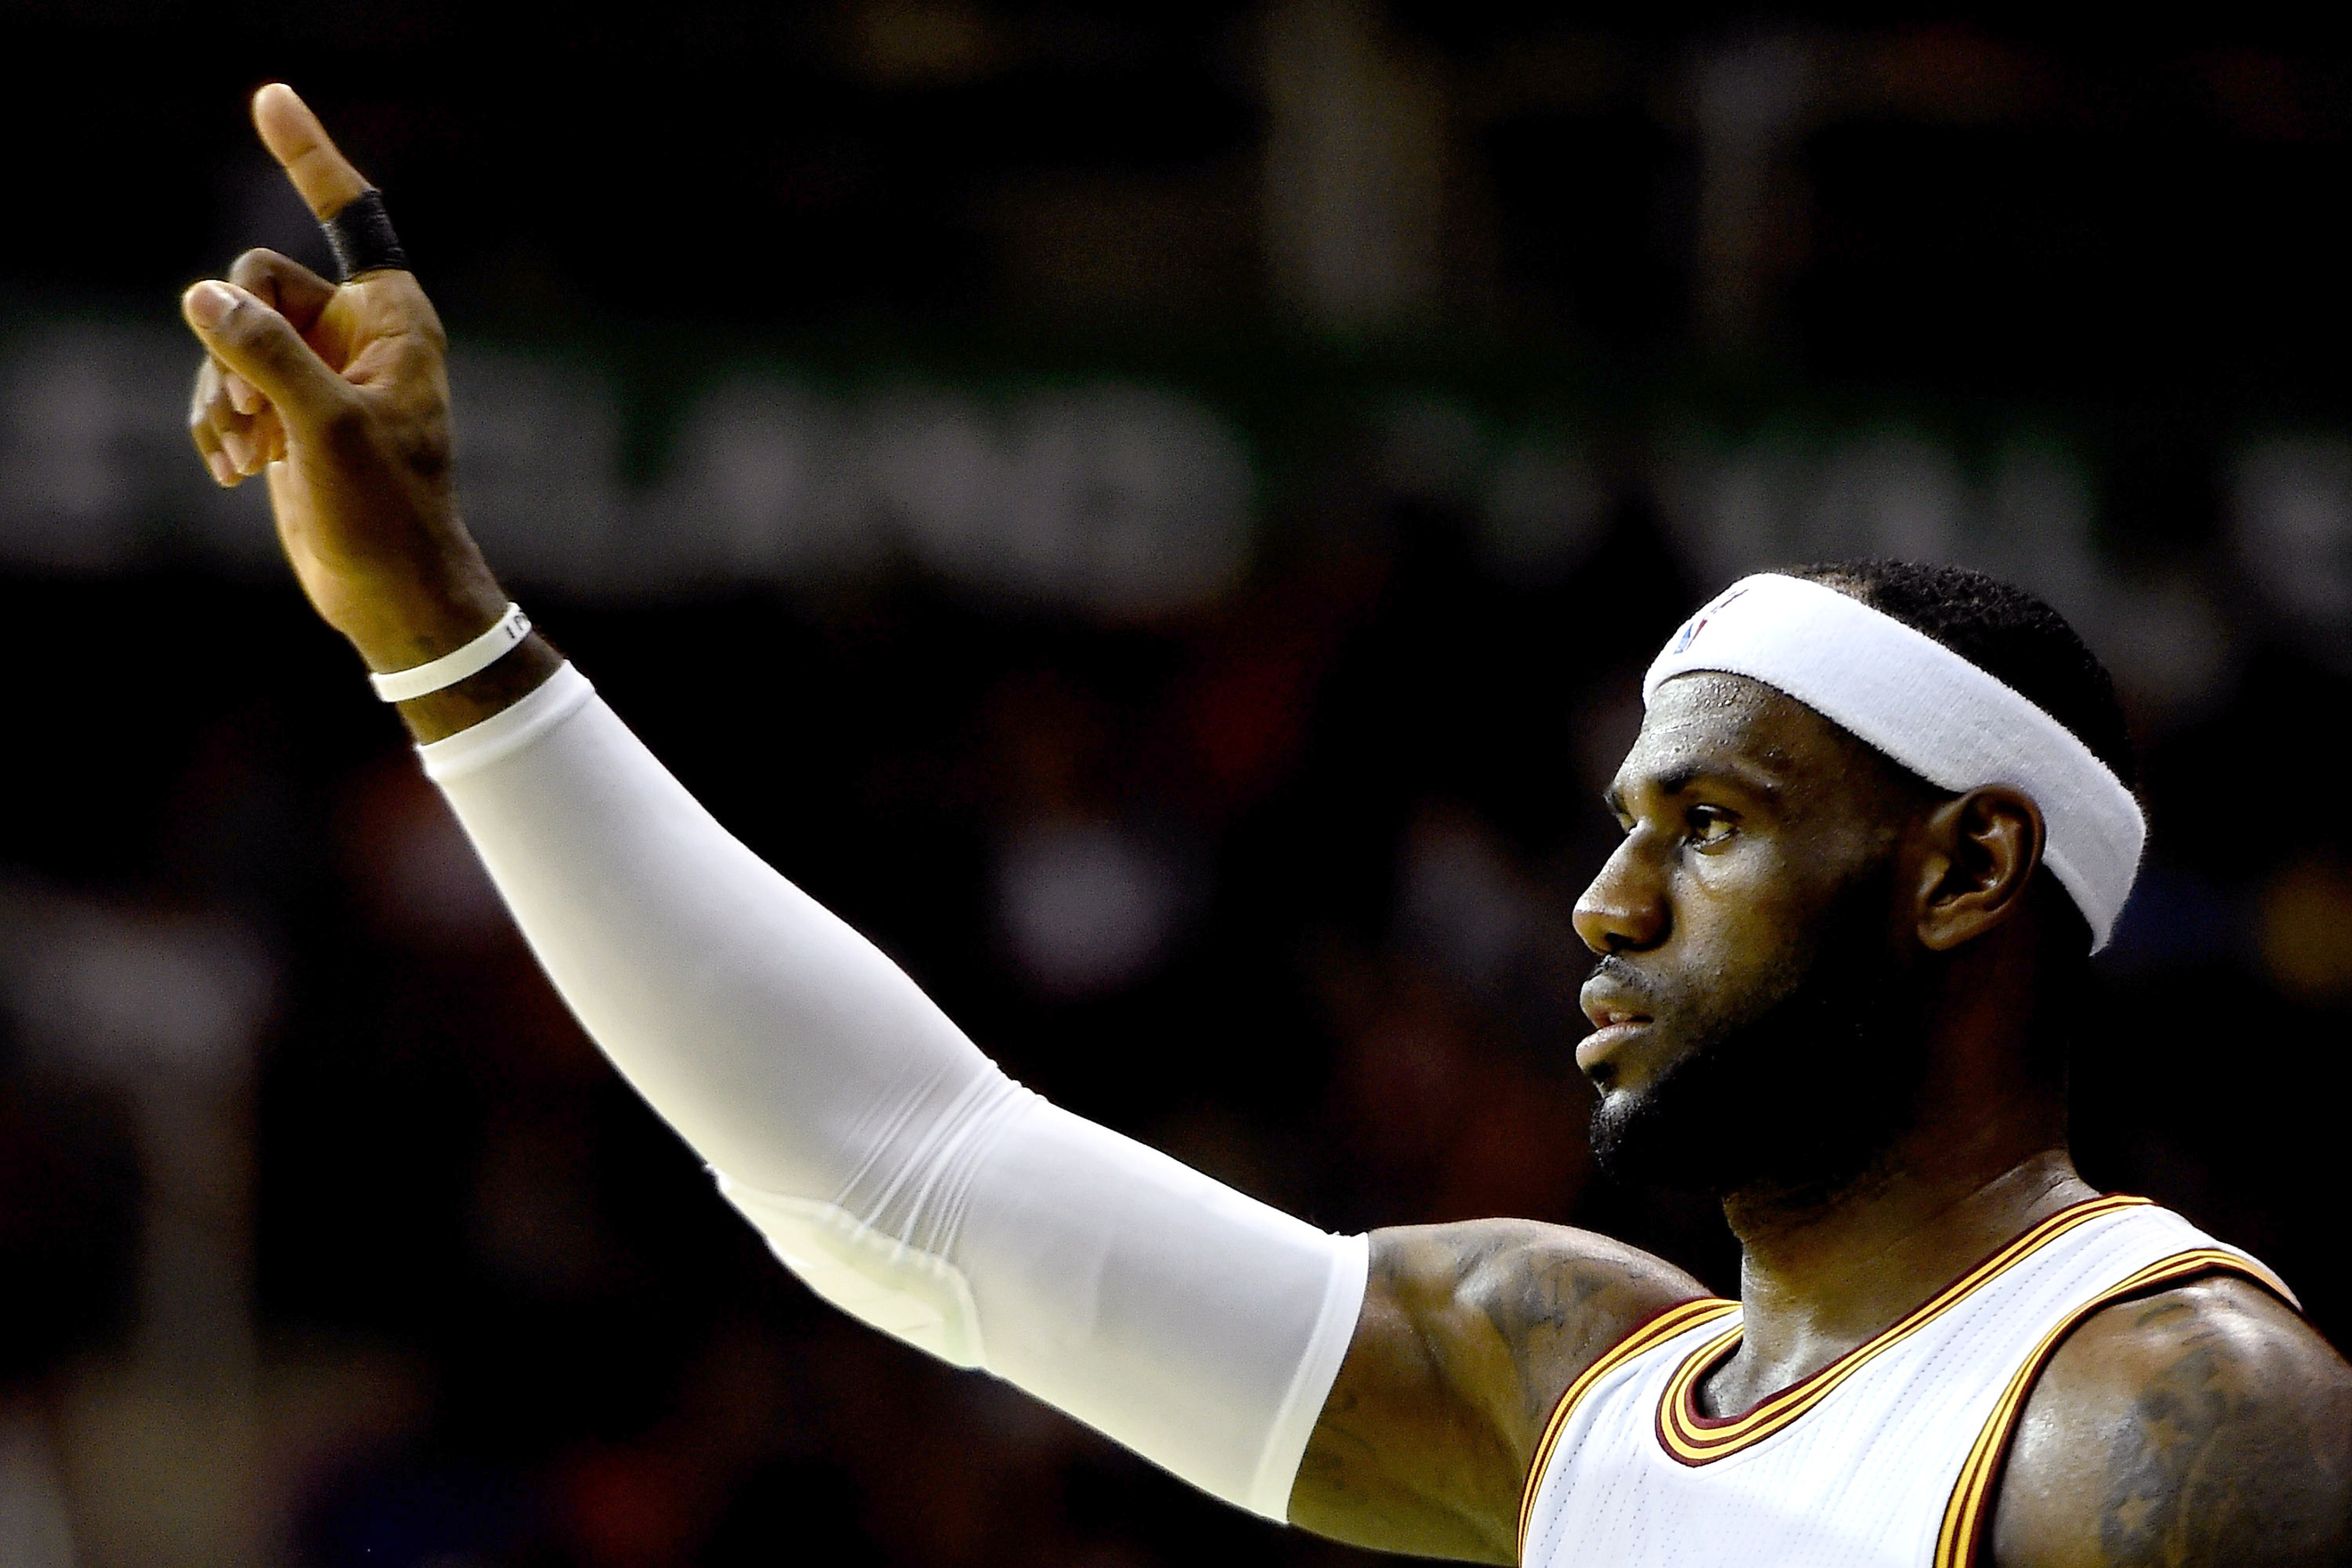 He might have lost the MVP last season, but LeBron James is still the best small forward in the NBA.